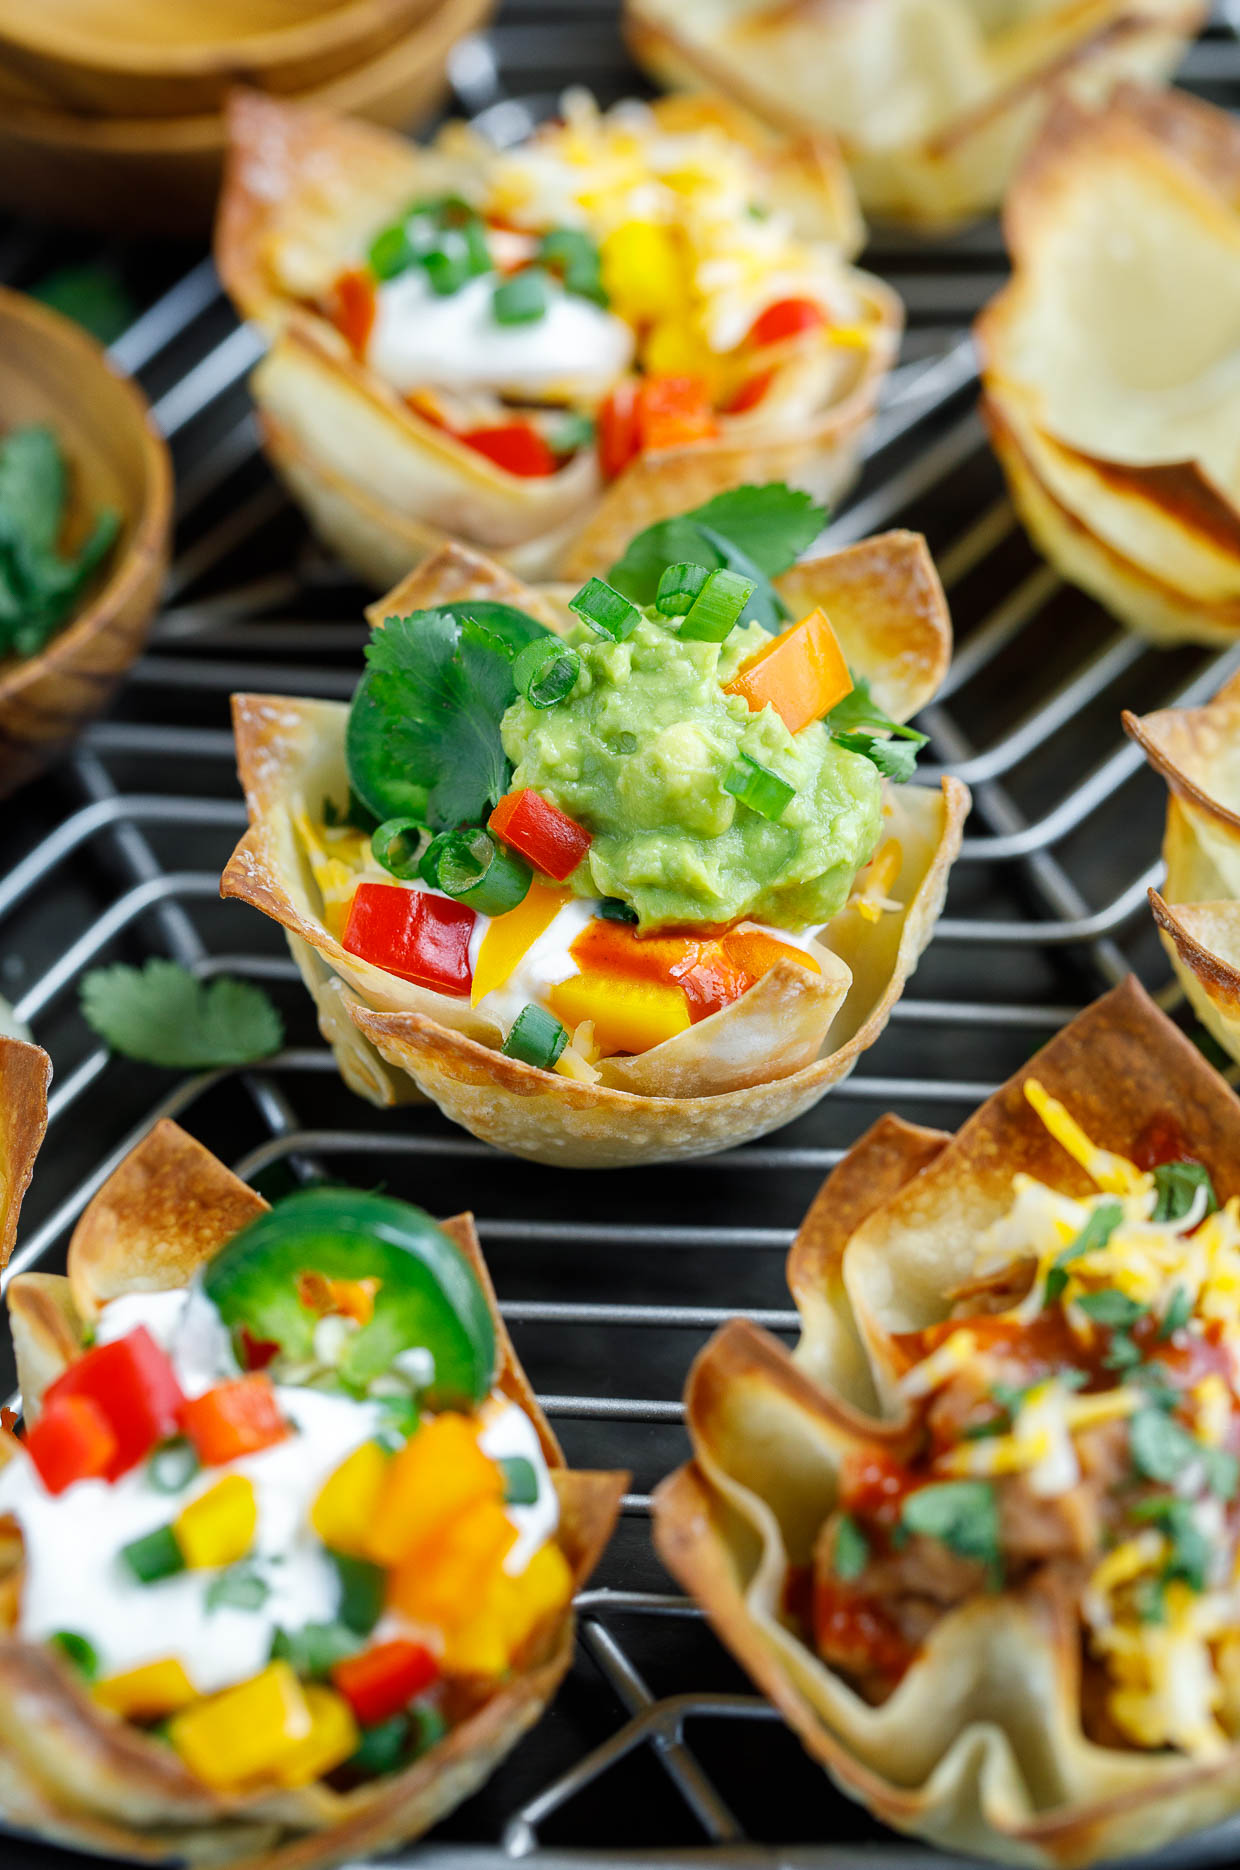 Vegetarian Wonton Taco Cups with Guacamole